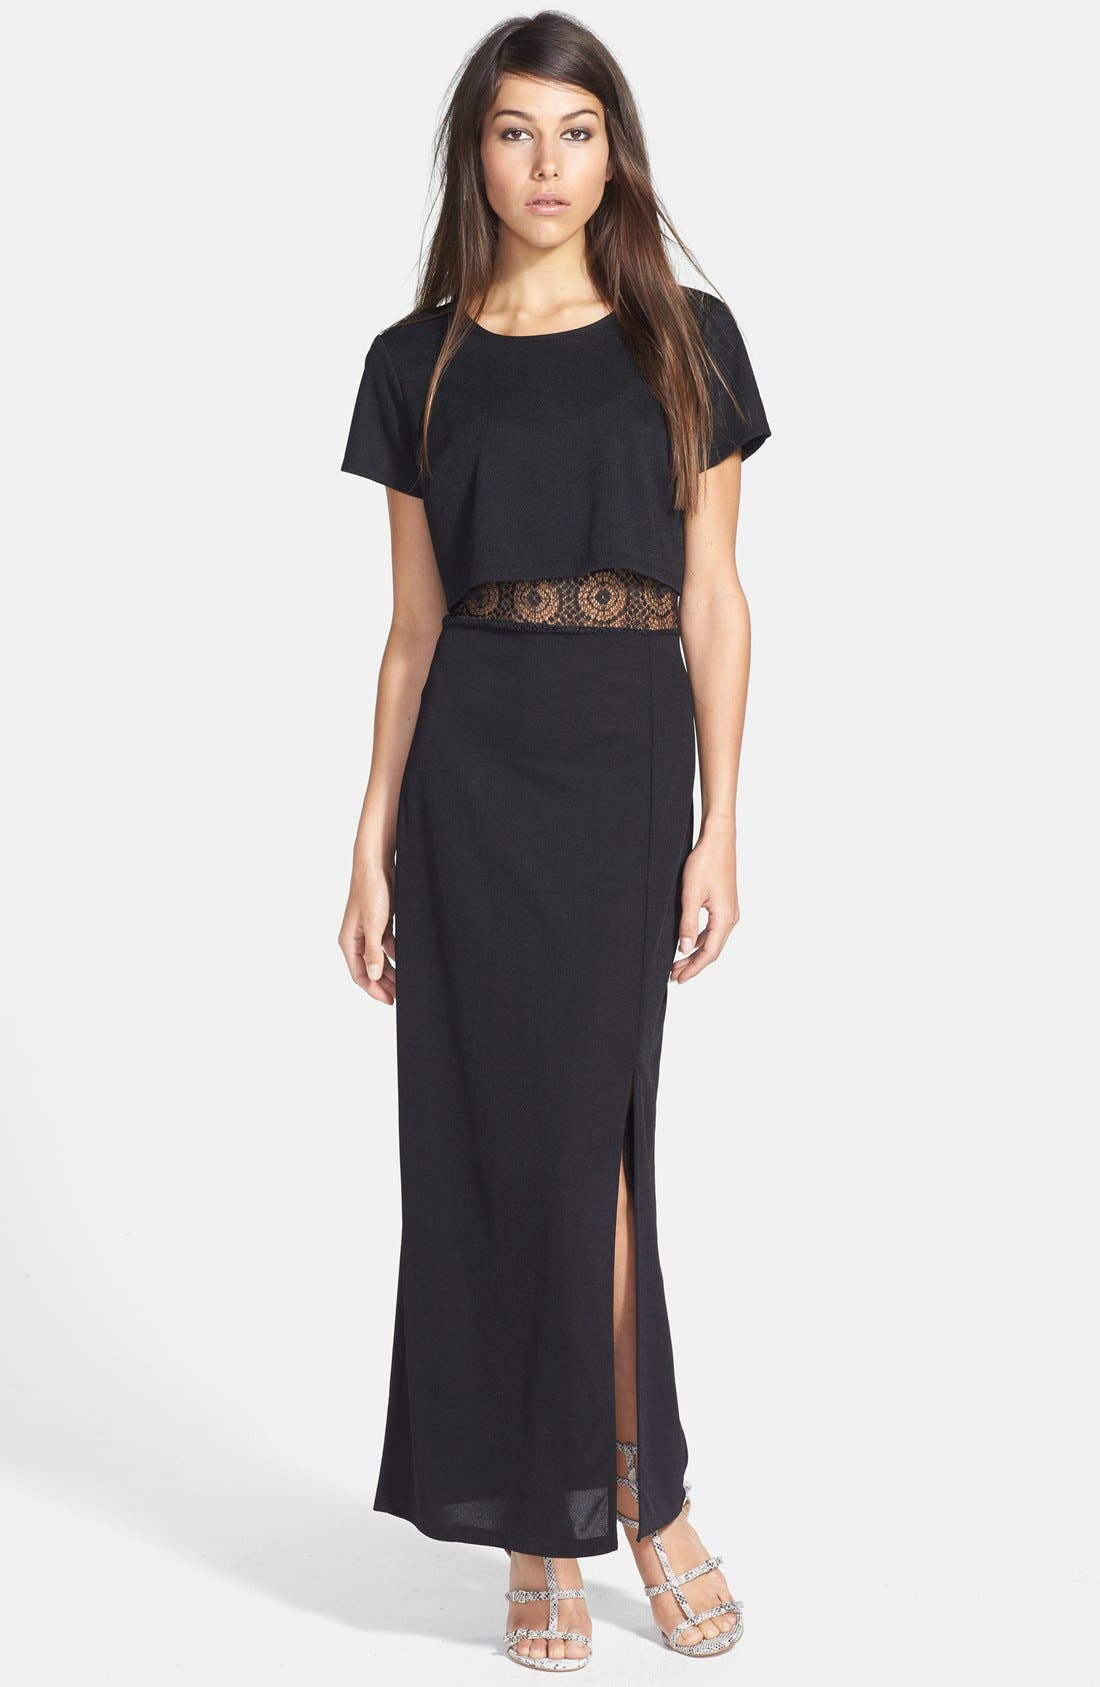 Alternate Image 1 Selected - June & Hudson Lace Panel Maxi Dress (Black)